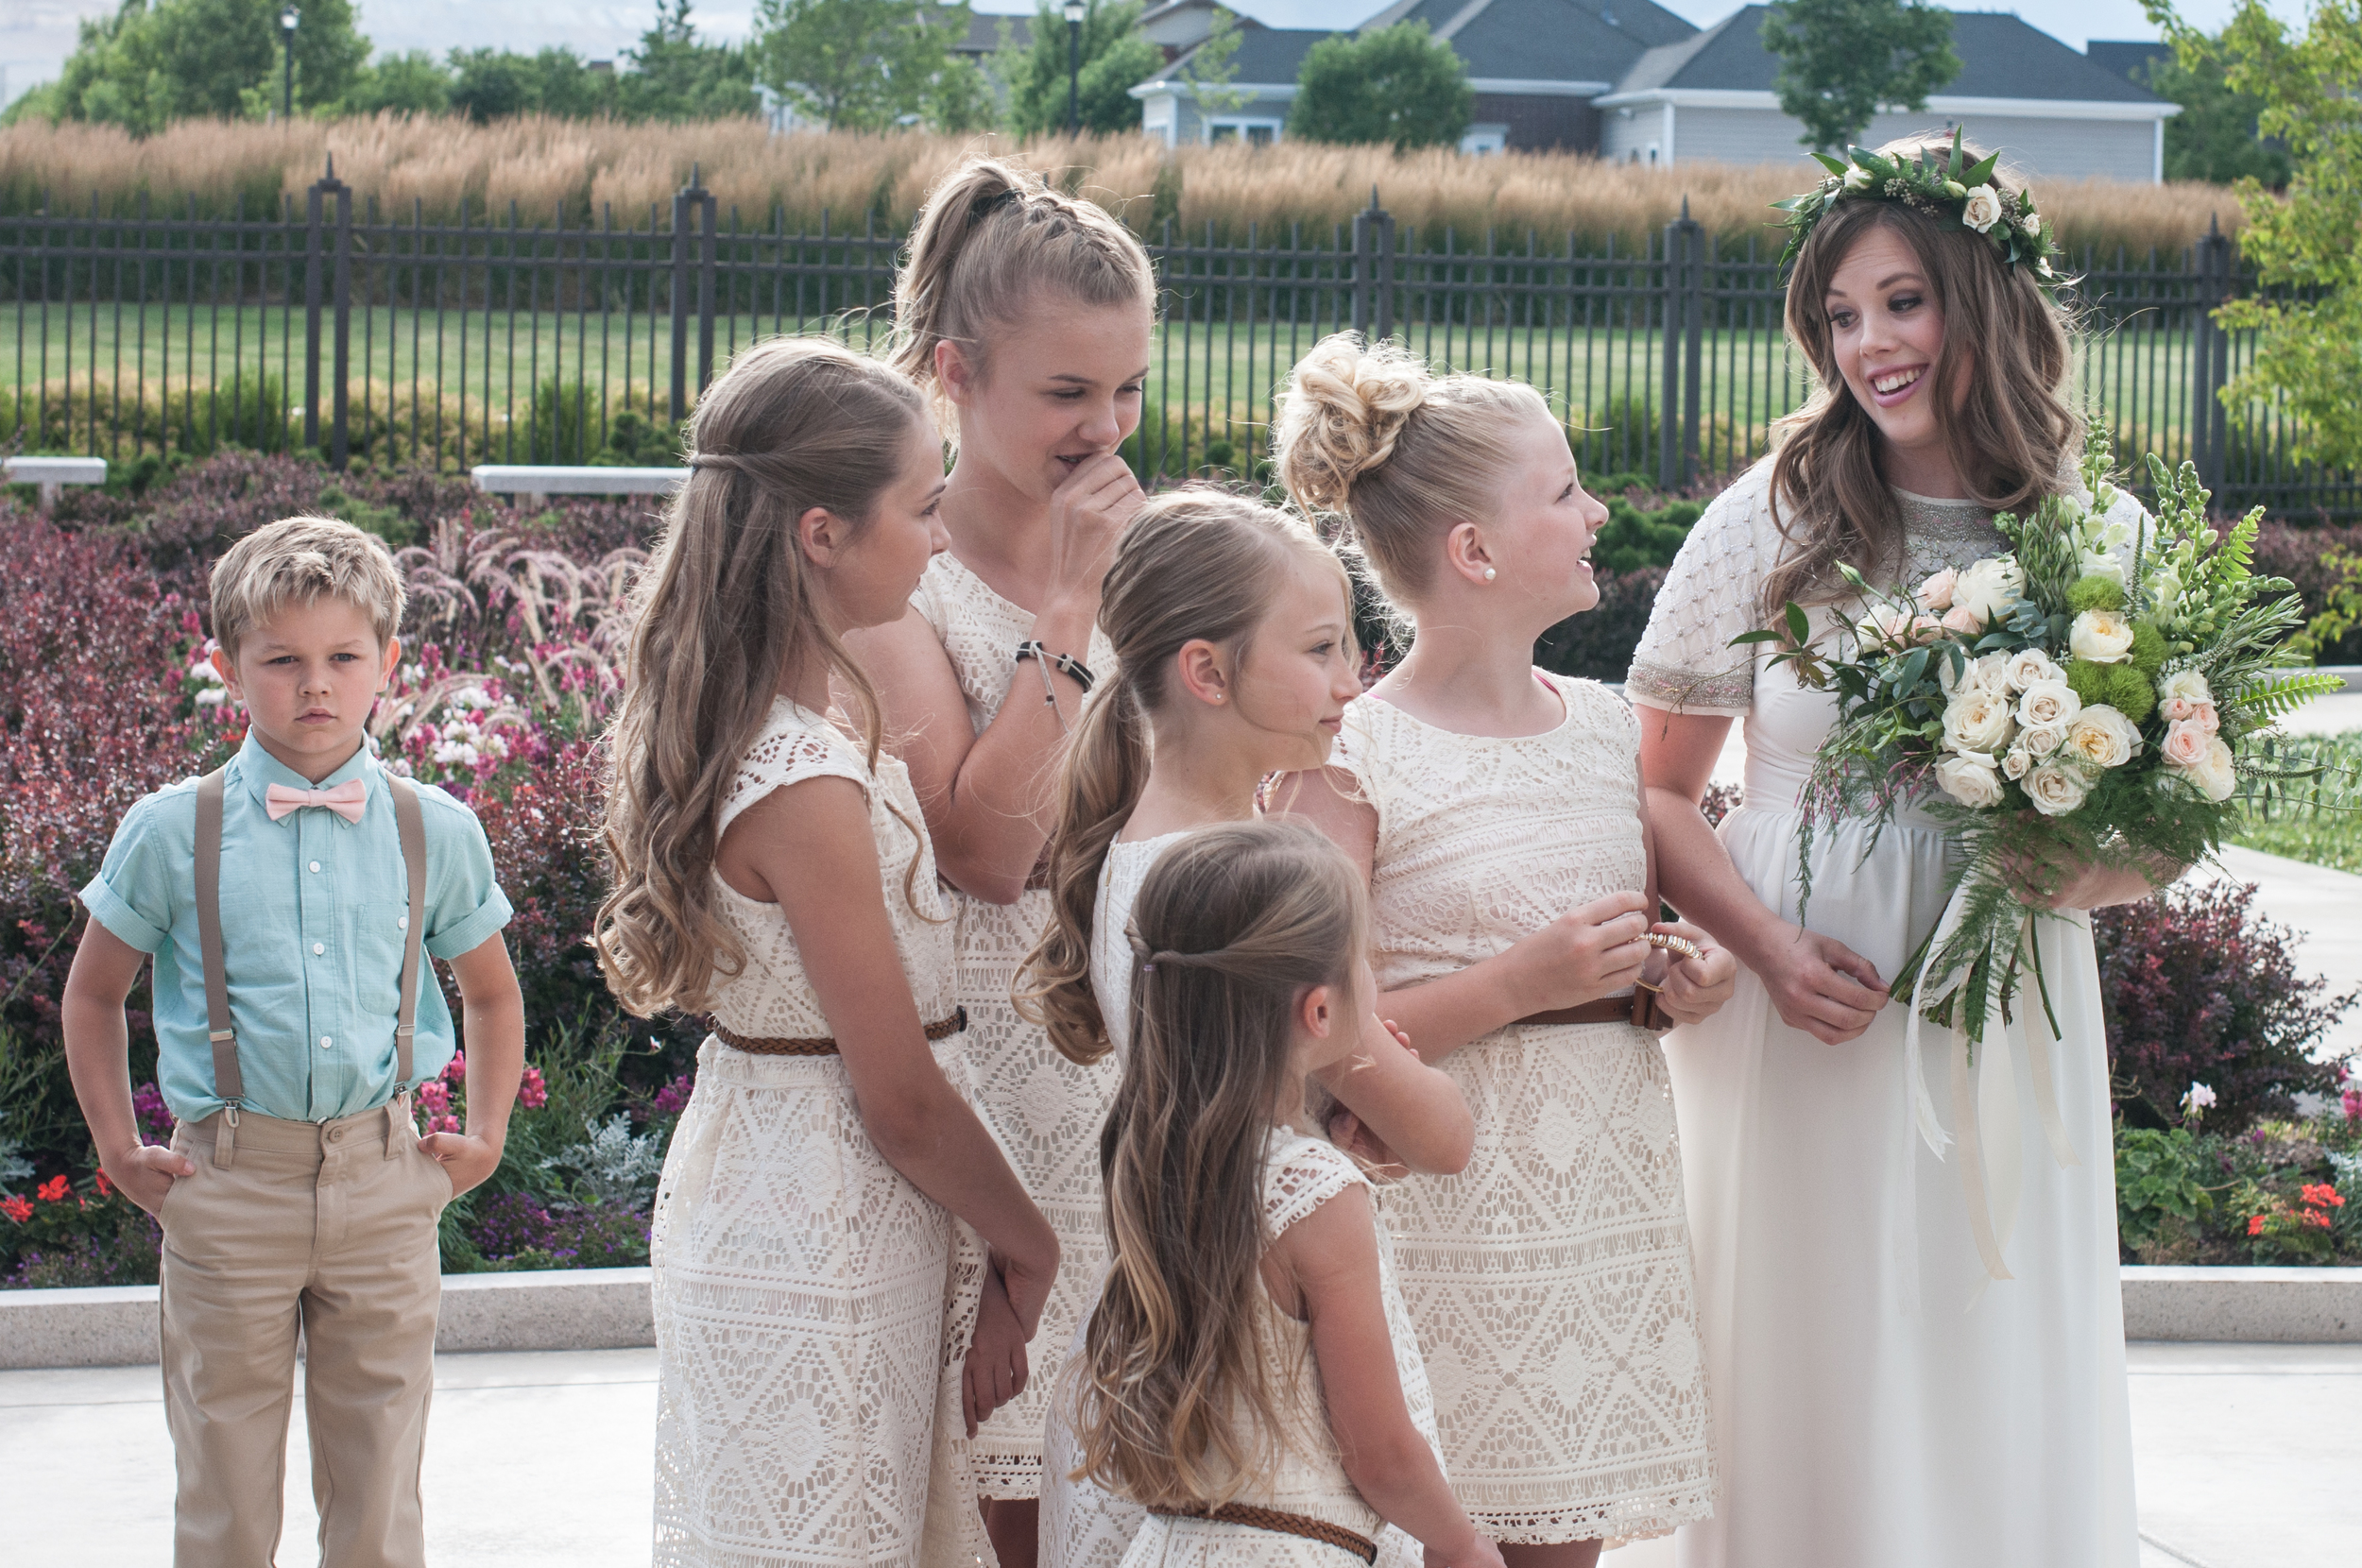 Utah Wedding - Lauren and girls-1.jpg